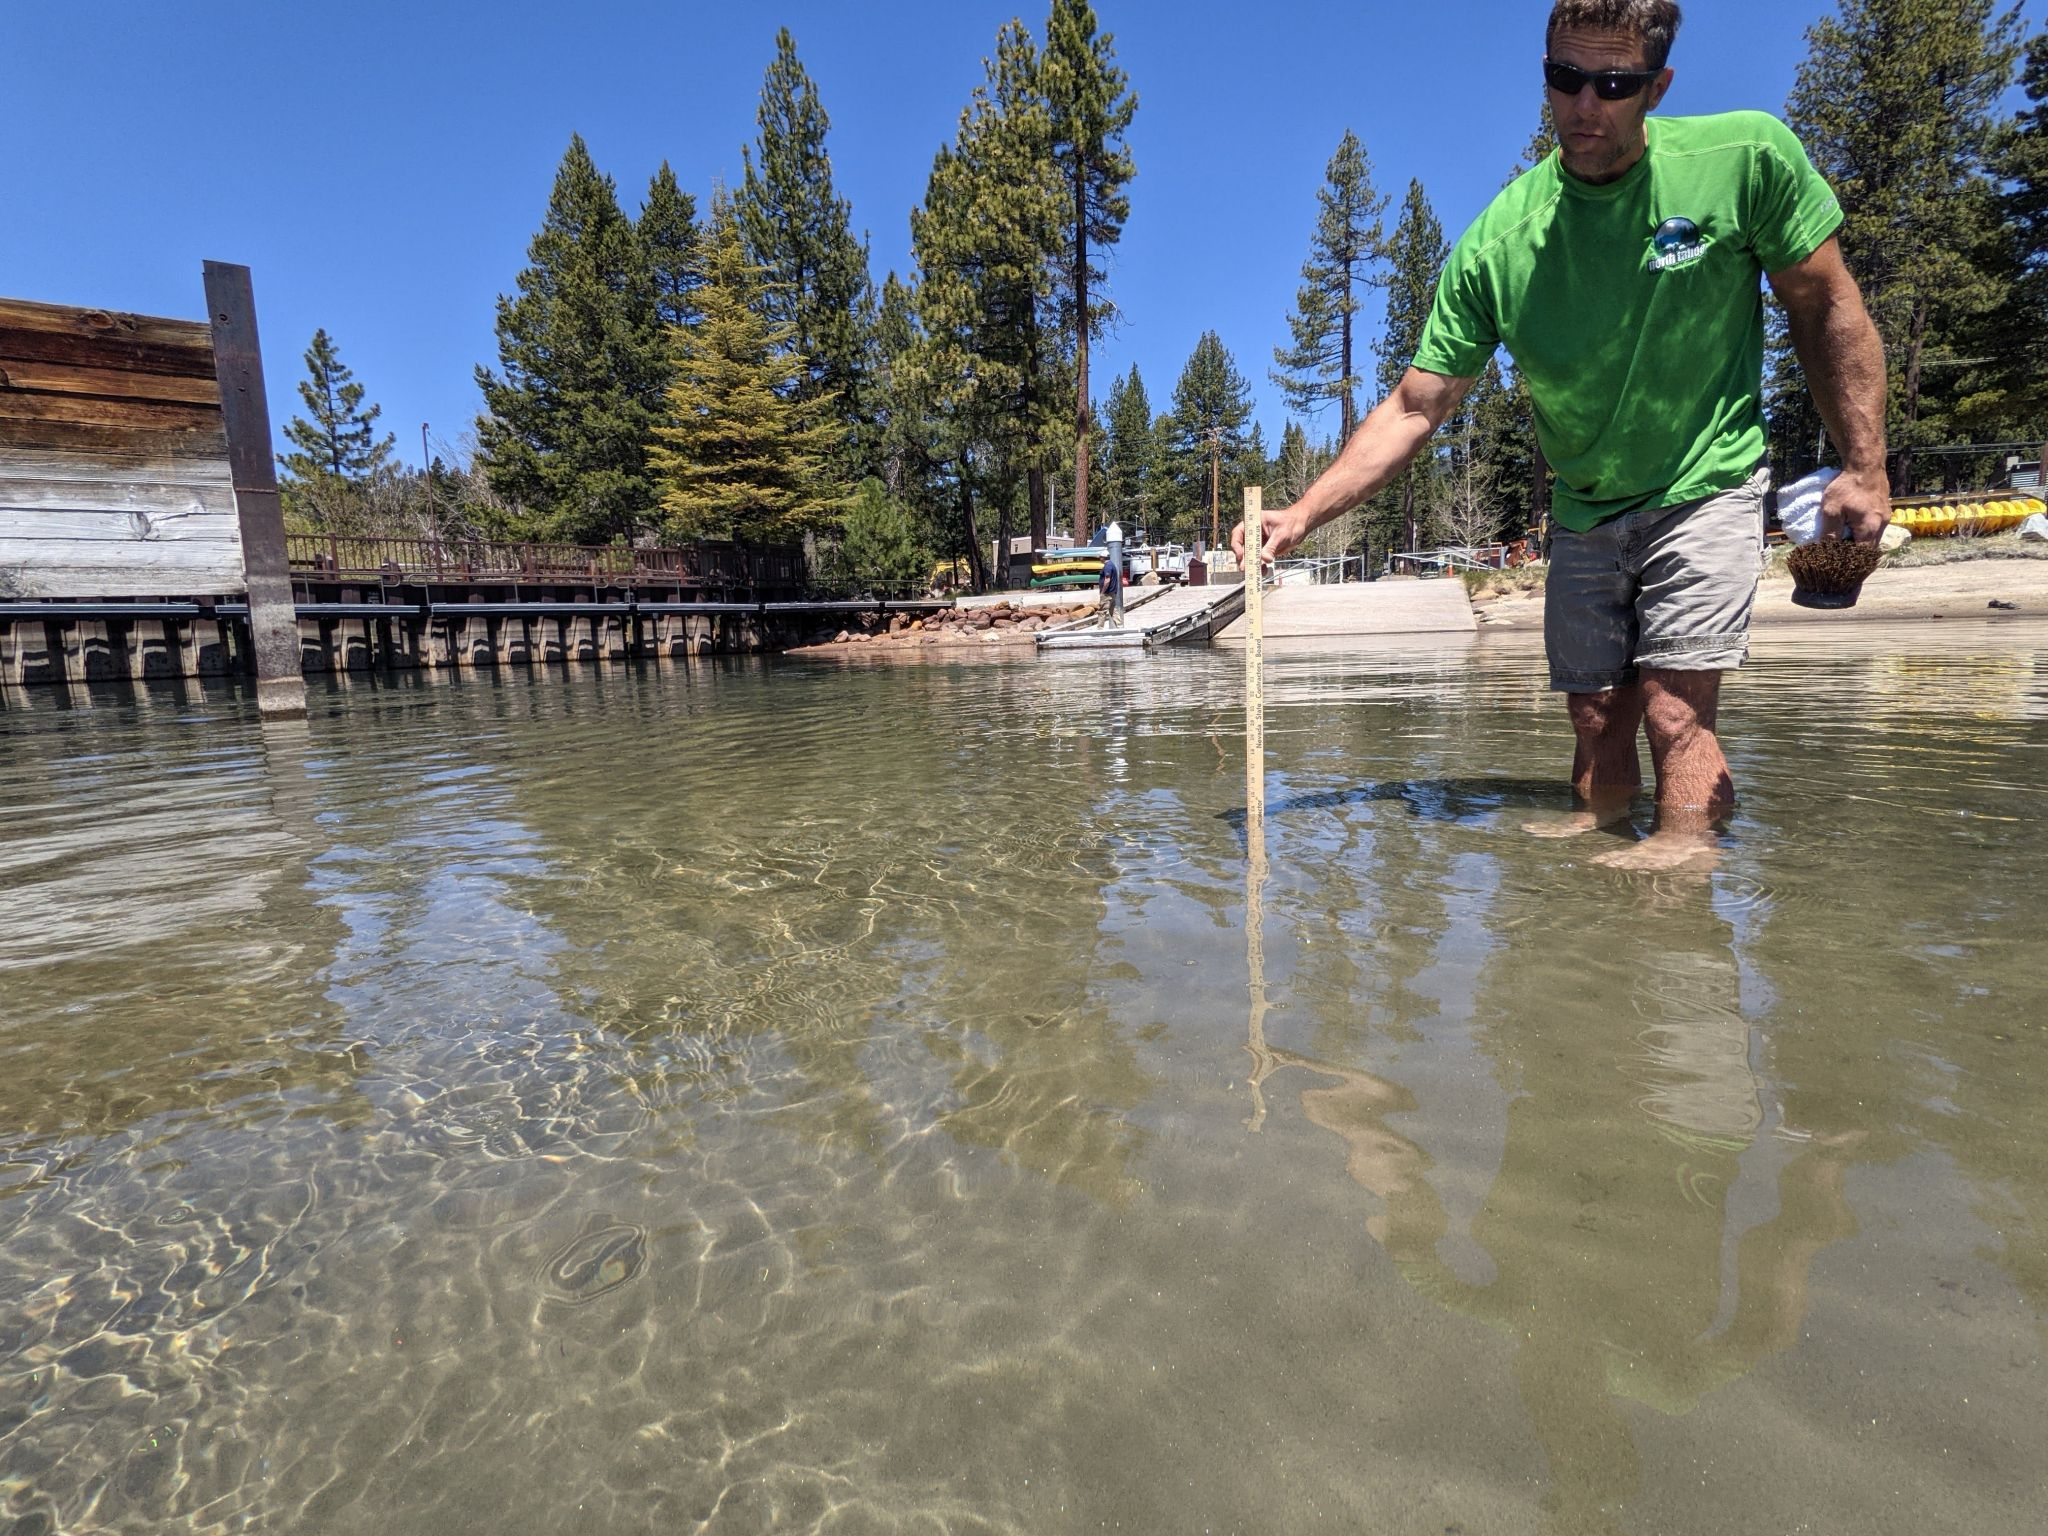 Another boat launch shuts down in Tahoe before summer even starts